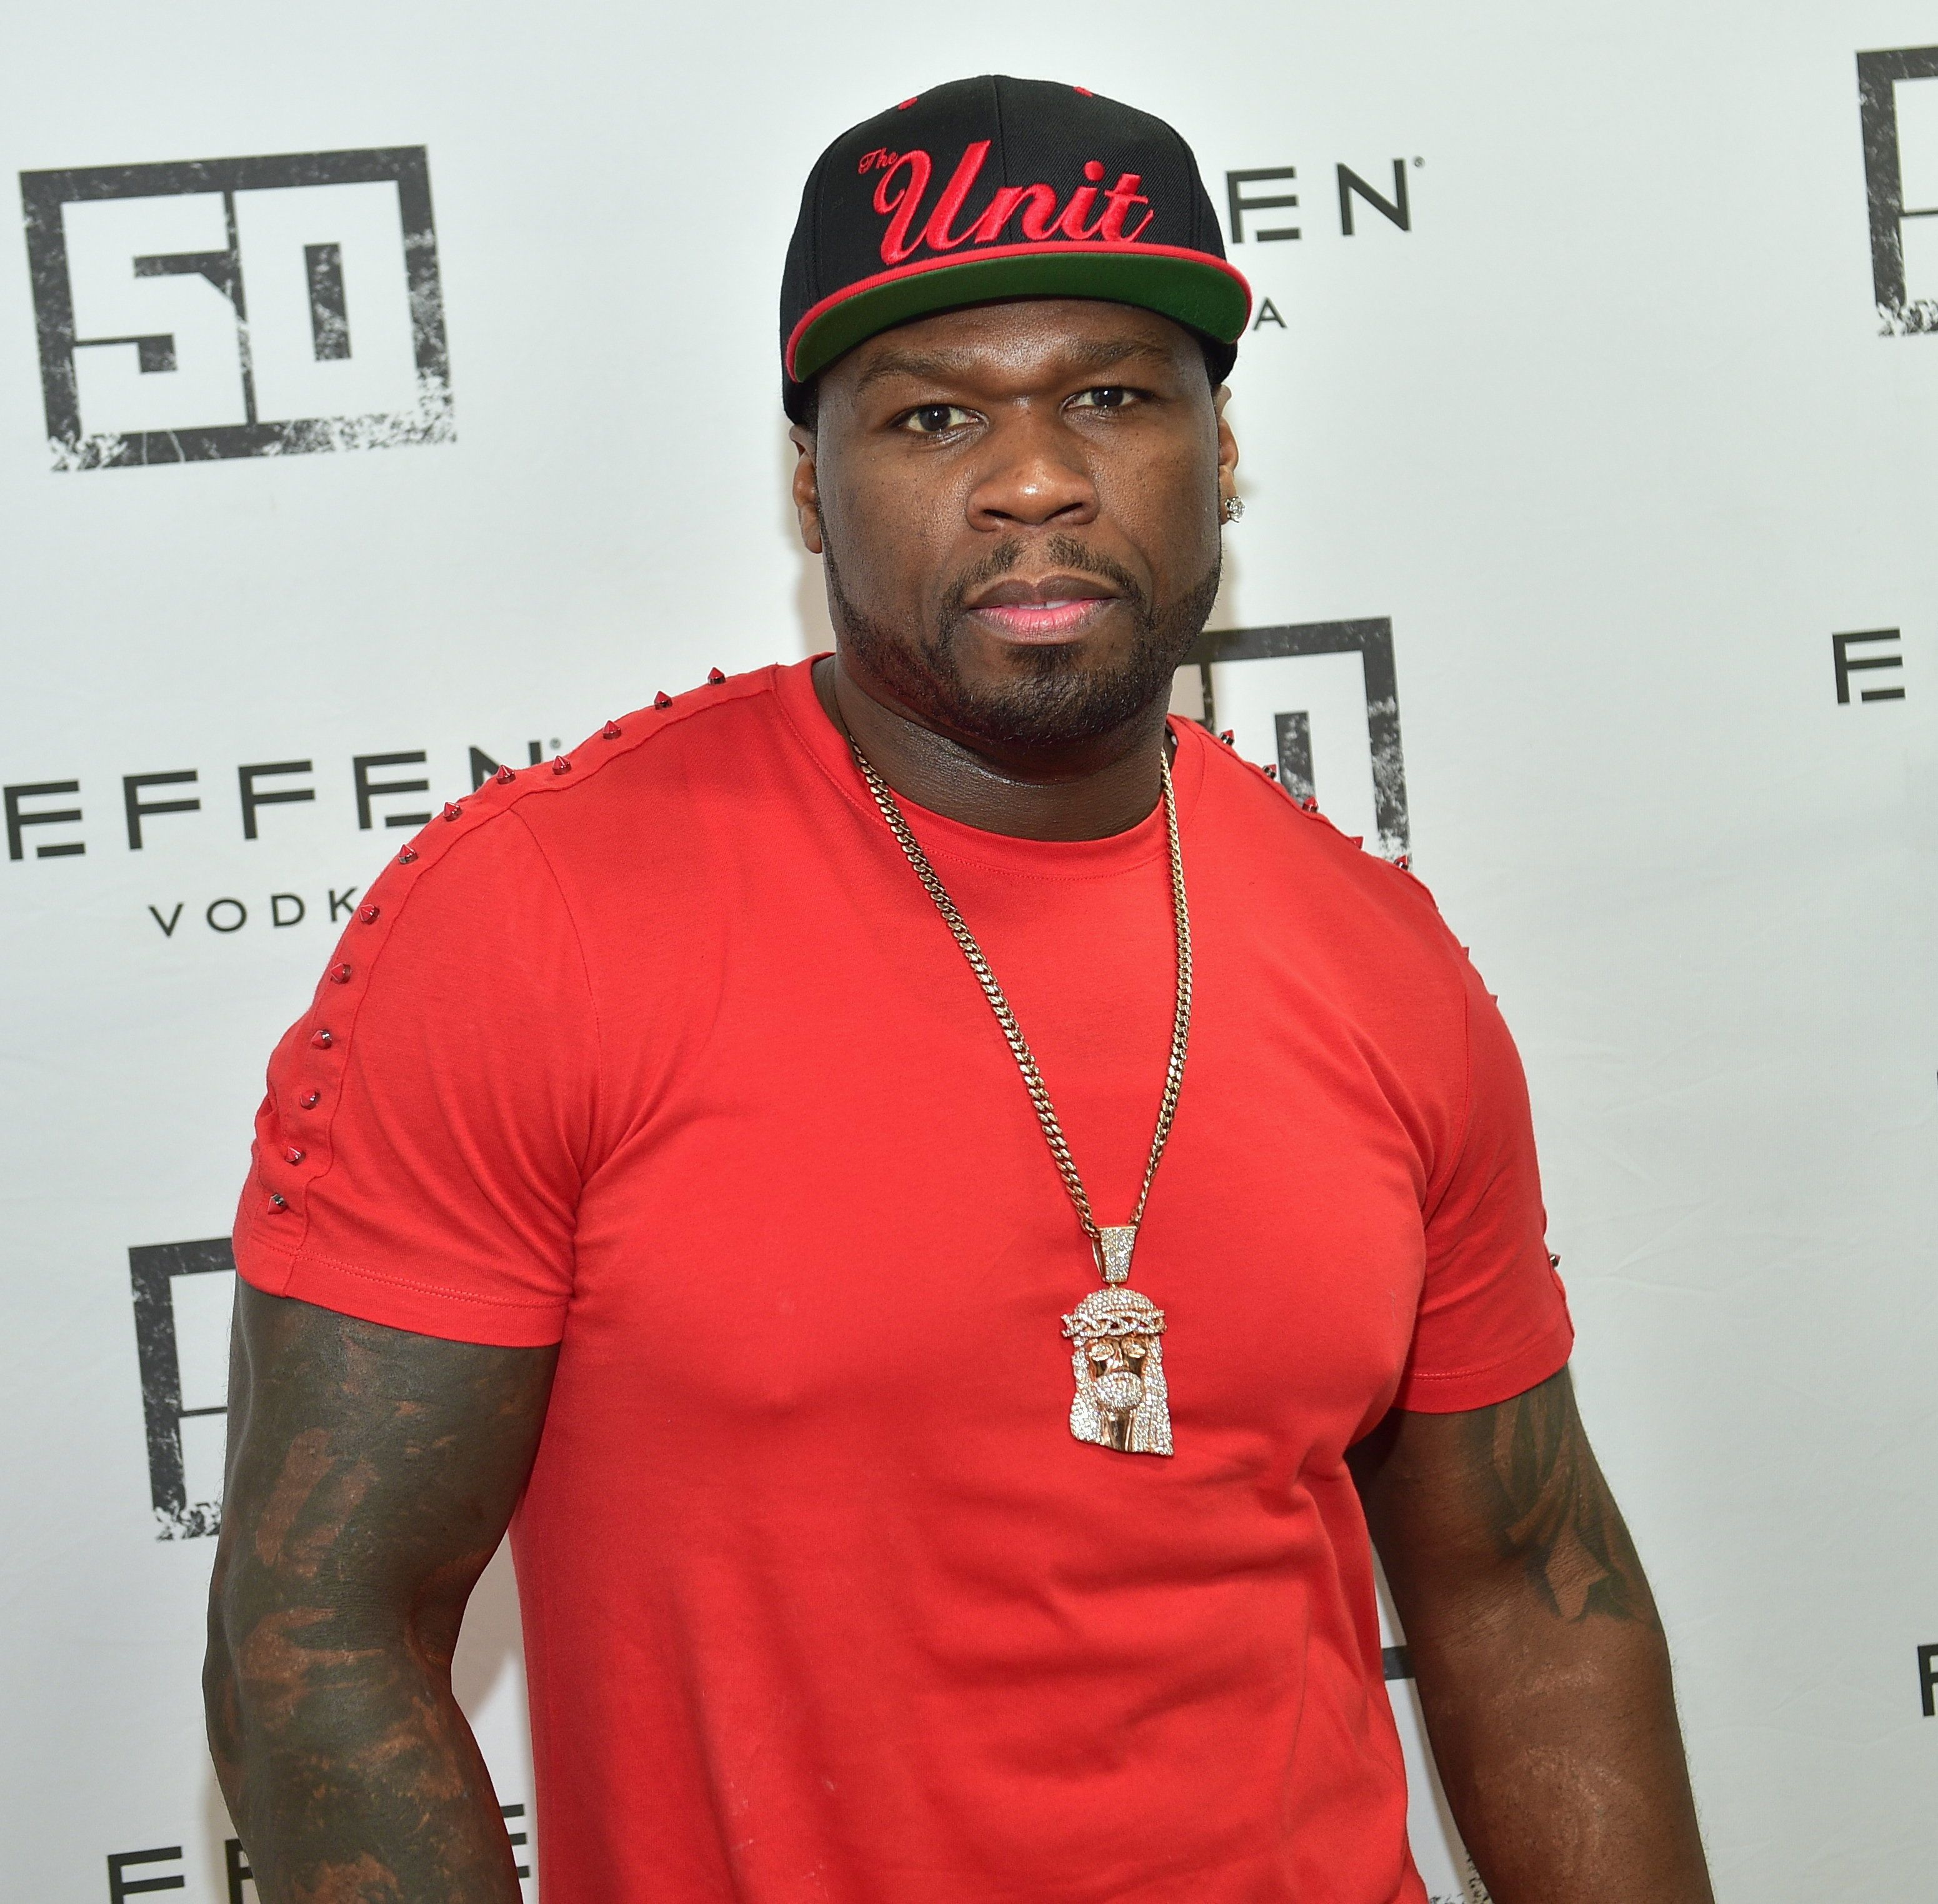 ATLANTA, GA - FEBRUARY 20:  50 Cent attends an Effen Vodka appearance at Kilroy's Package Store on February 20, 2016 in Atlanta, Georgia.  (Photo by Prince Williams/WireImage)